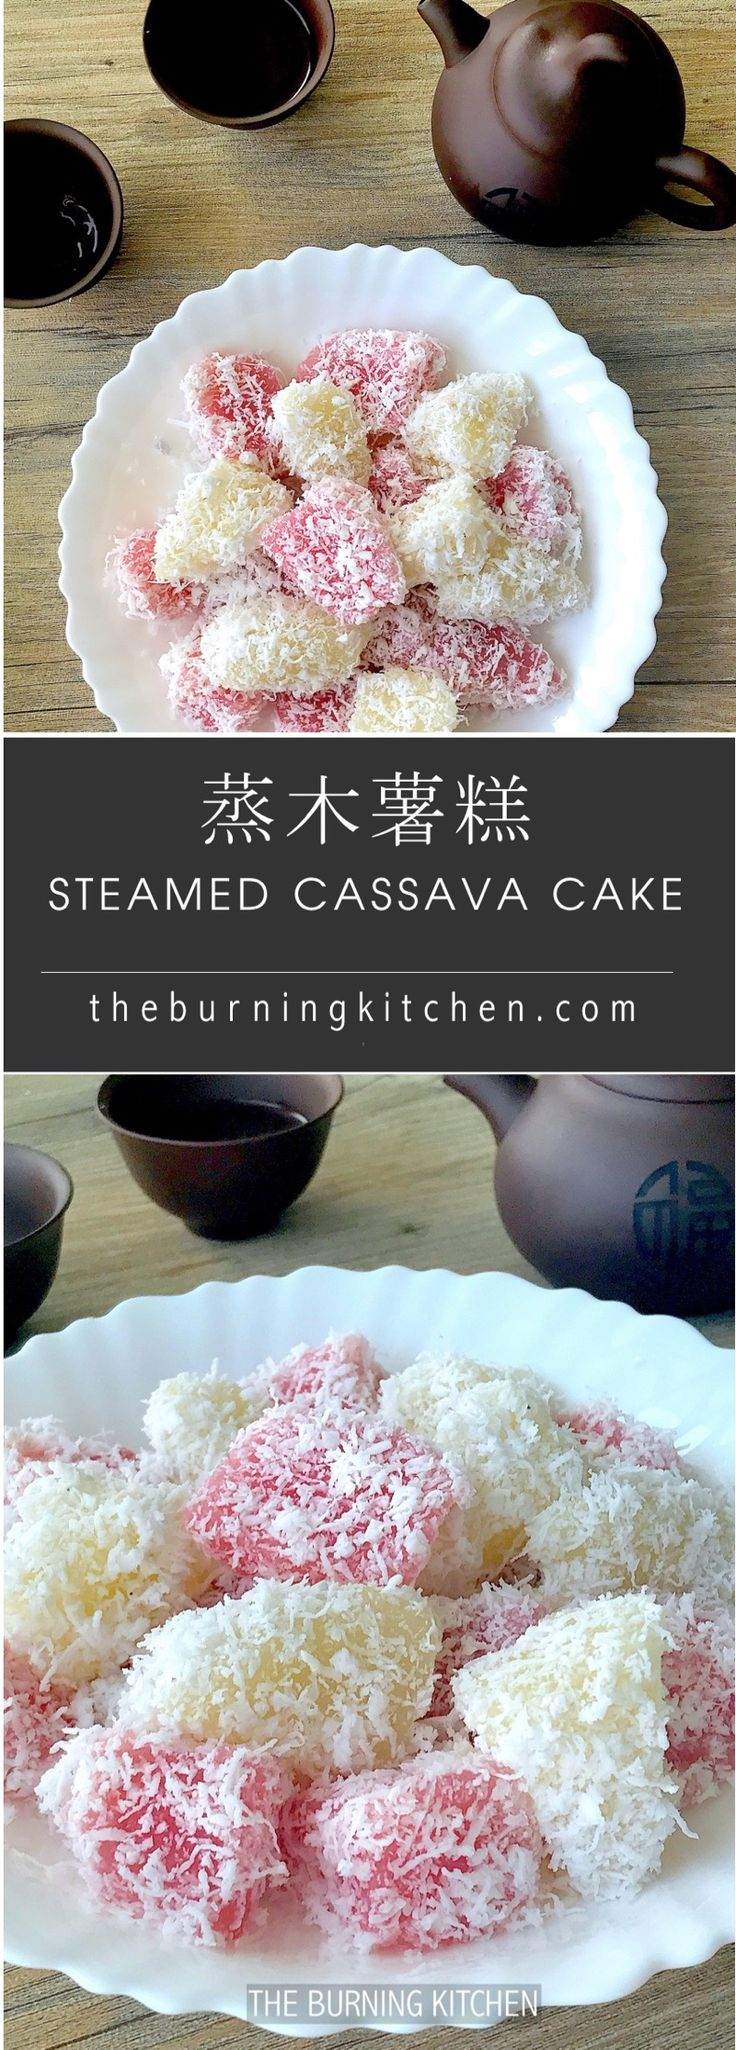 Steamed Tapioca/Cassava Cake (蒸木薯糕 / Kueh Ubi Kayu): Nothing beats freshly steamed Tapioca Cake! This steamed cake is soft, moist and aromatic as it uses freshly grated tapioca and coconut.